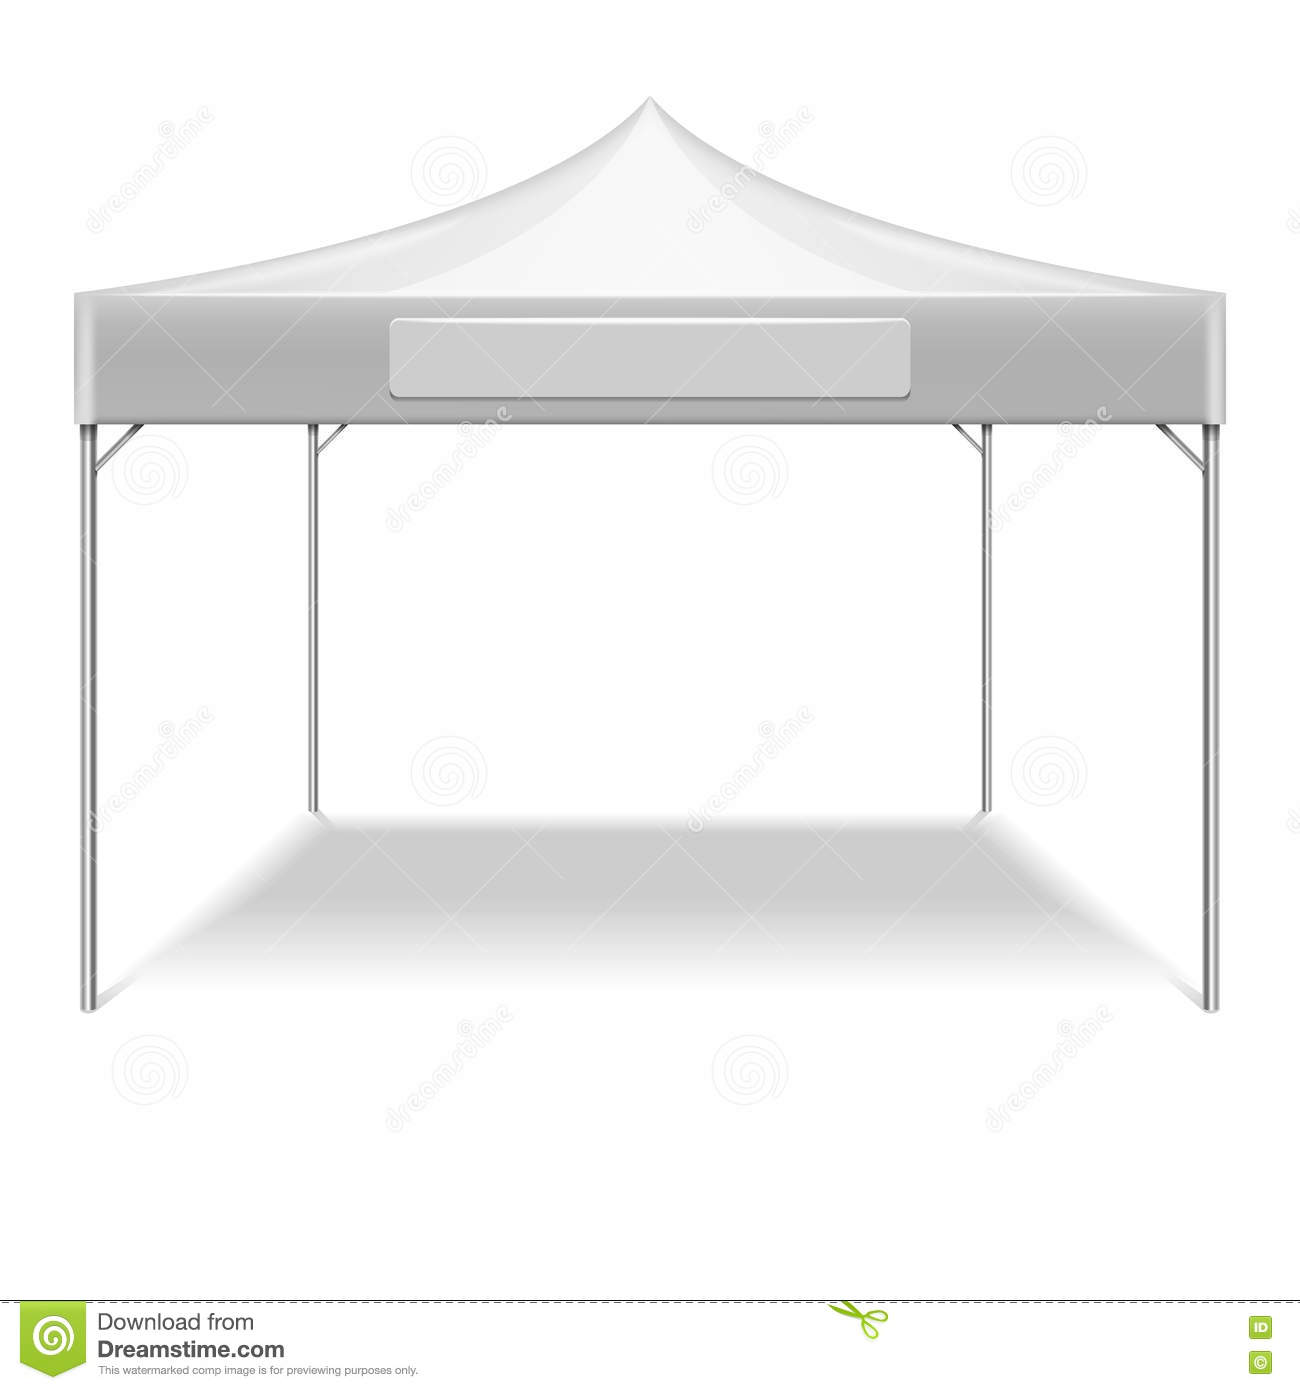 Realistic white outdoor folding party tent vector mockup Stock Images  sc 1 st  Dreamstime.com & White Empty Folding Tent Marquee Vector Template Stock Vector ...